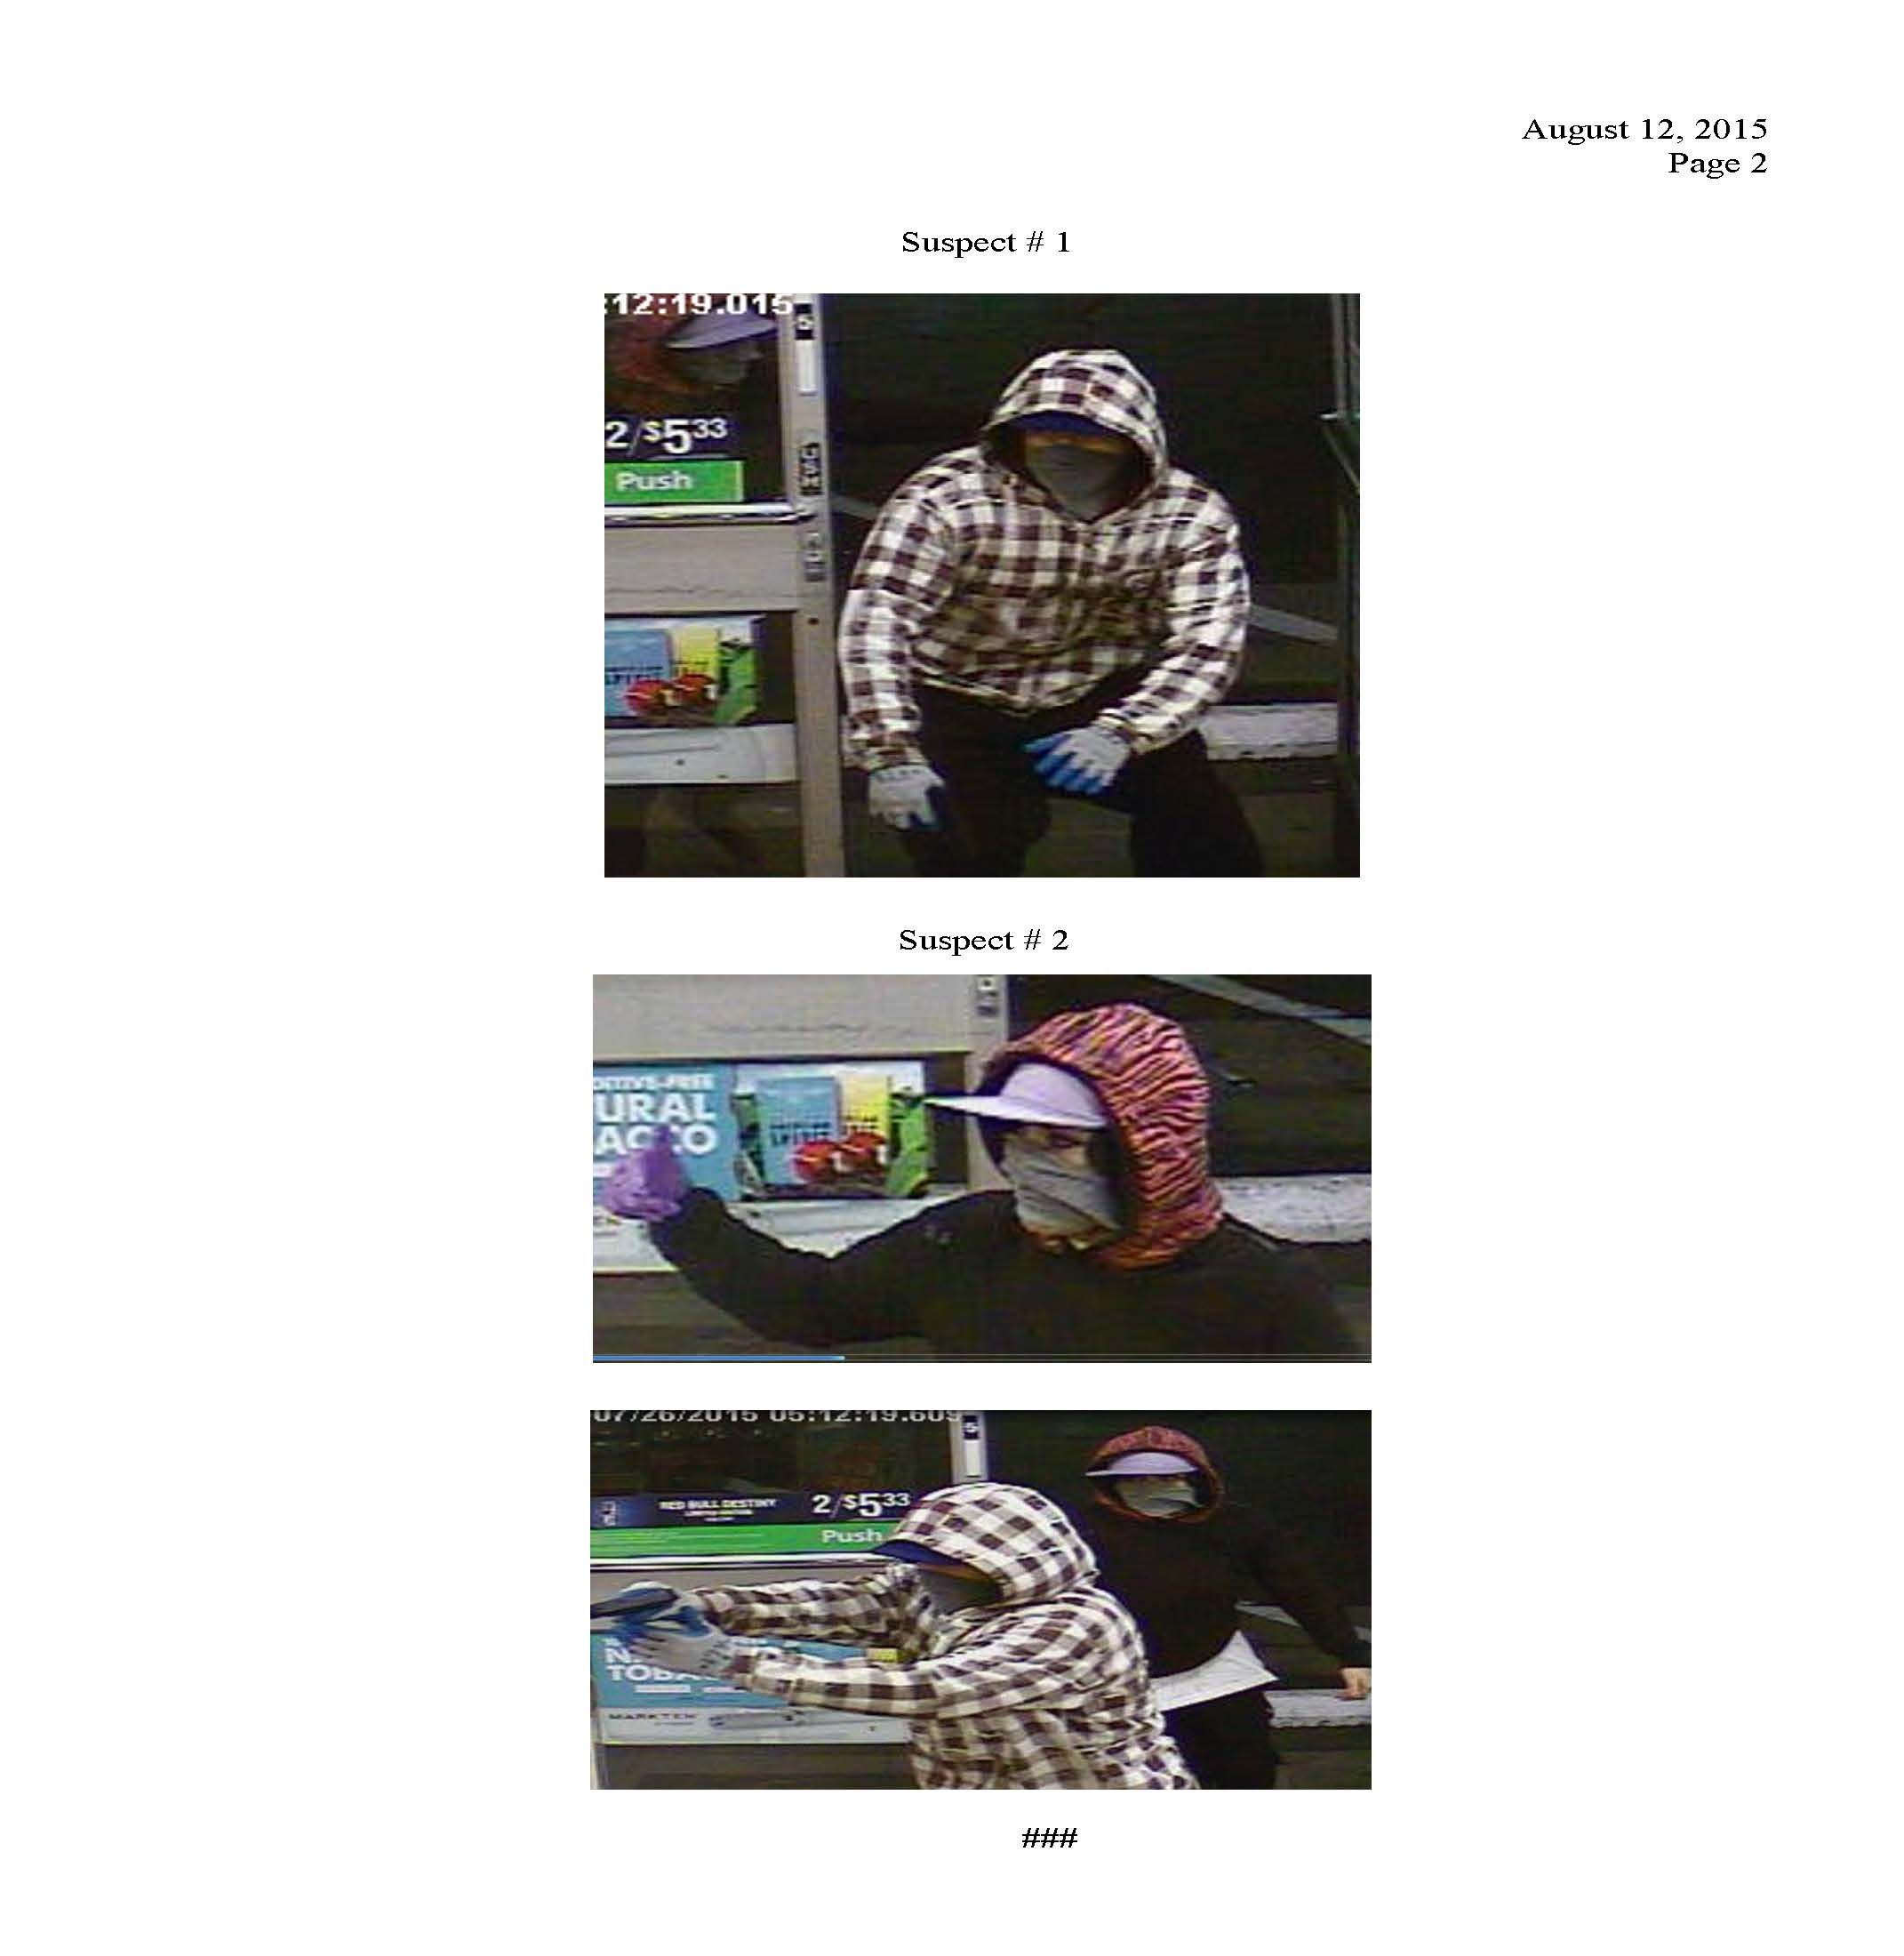 081215 Pacific Beach 7-Eleven Robbery_Page_2